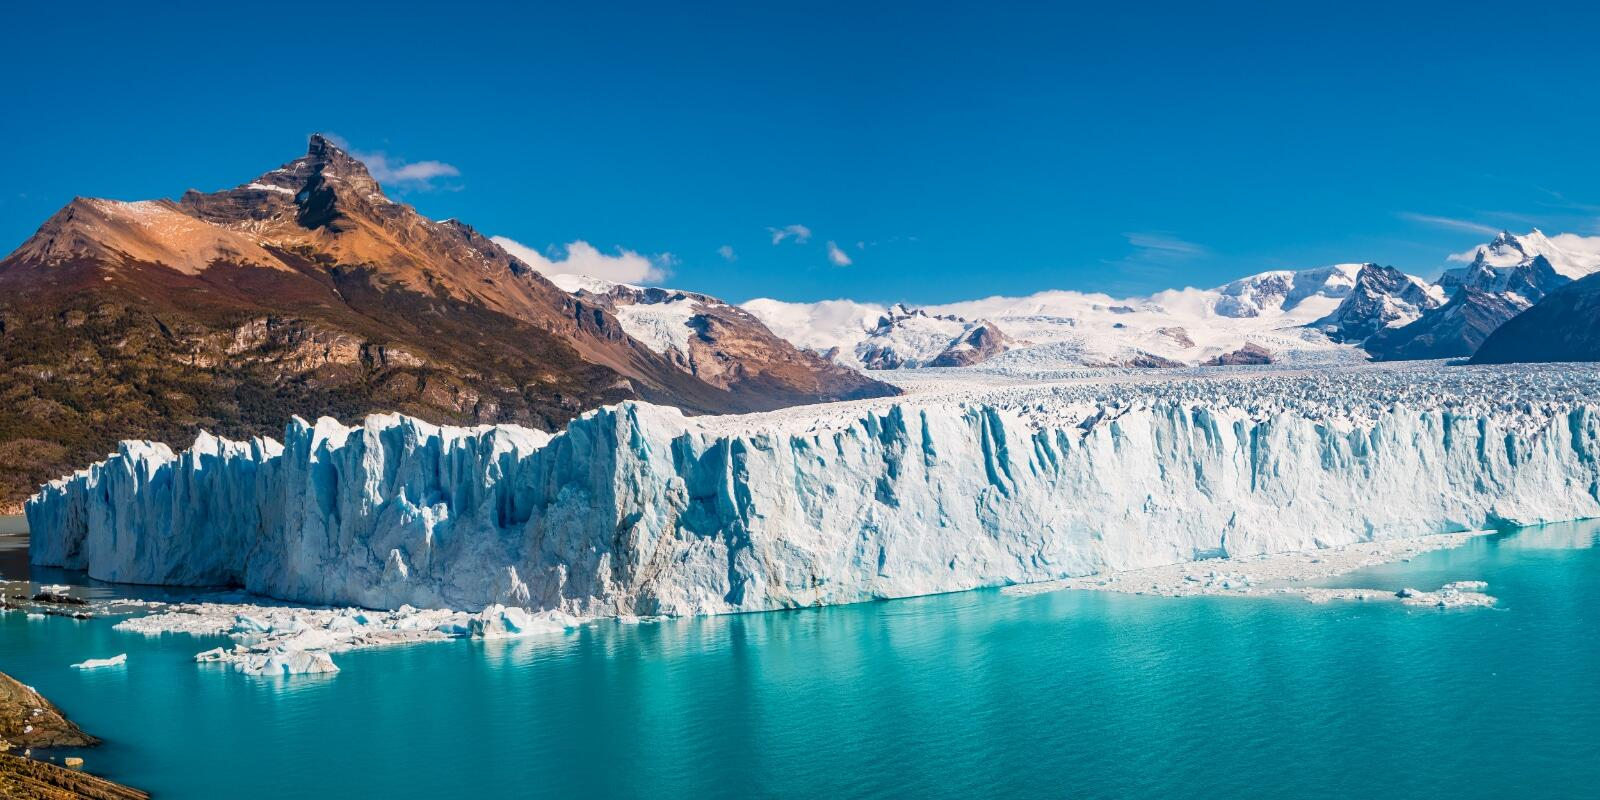 Cape Horn and the glaciers of the Patagonian canals 15 days / 14 nights